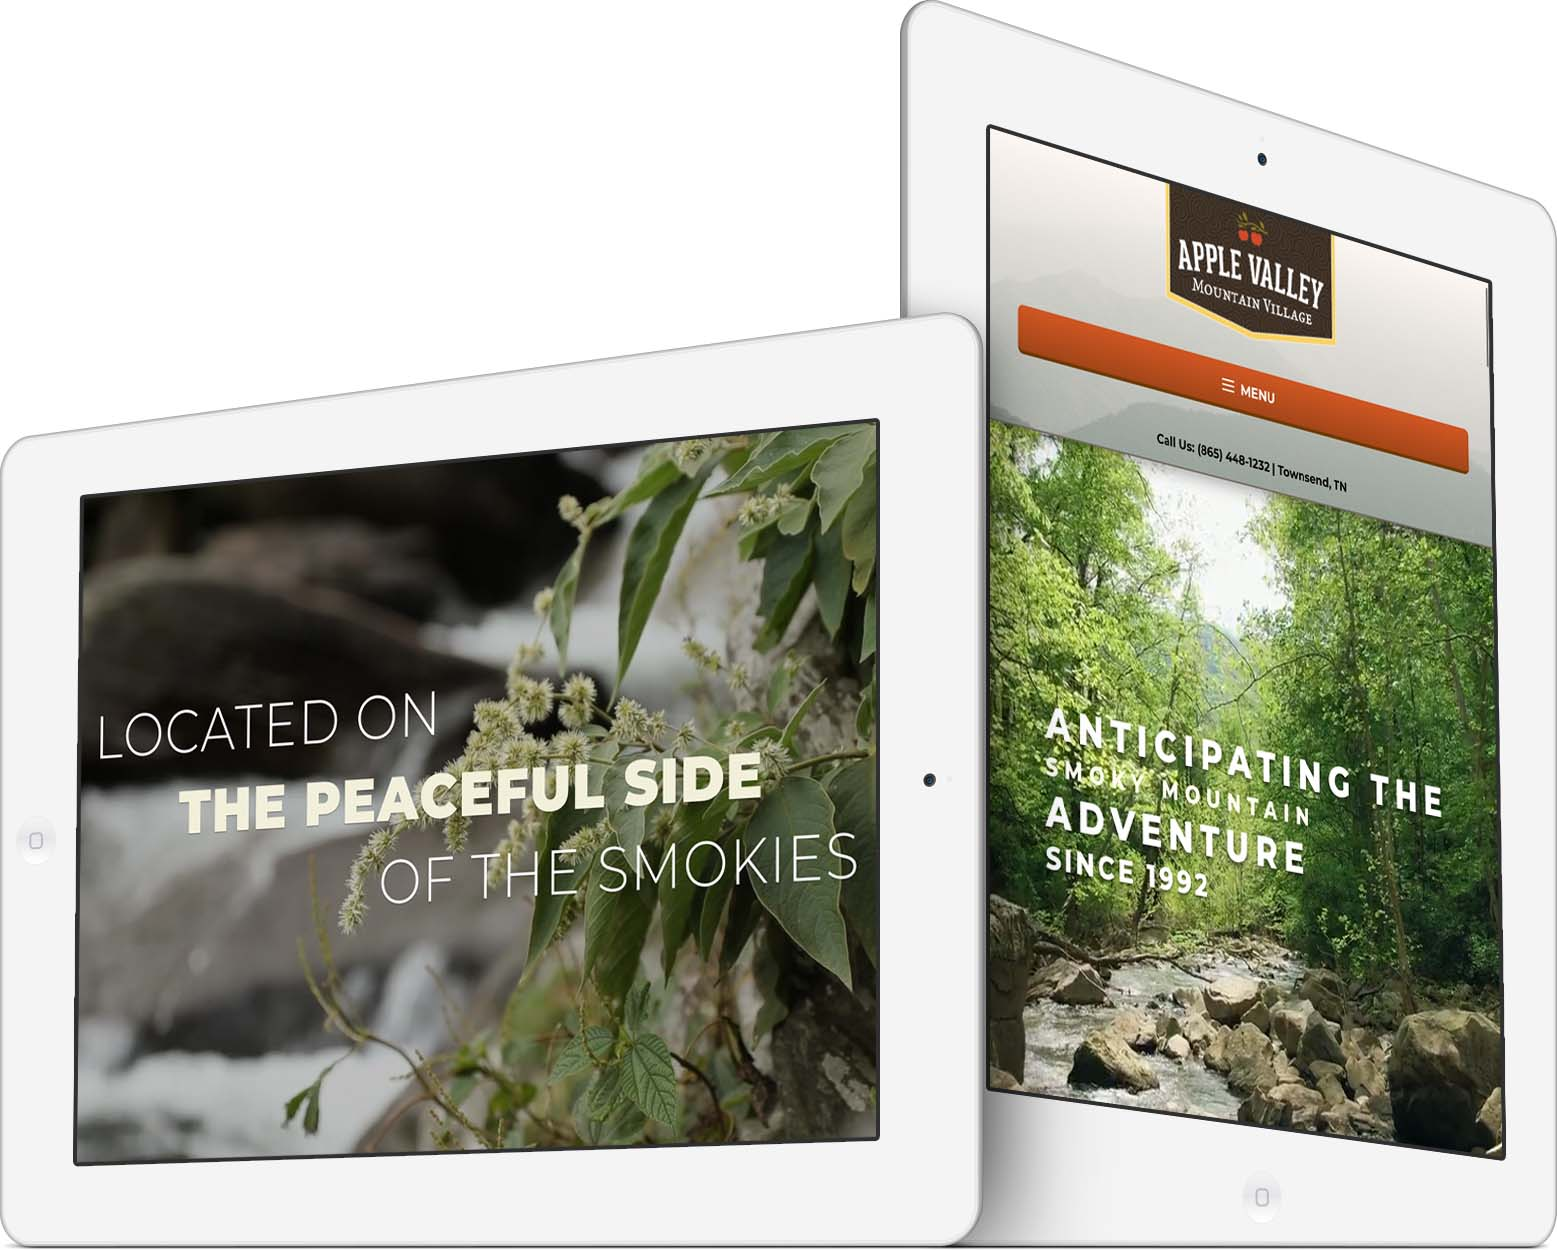 Apple Valley Mountain Village Responsive Web Design